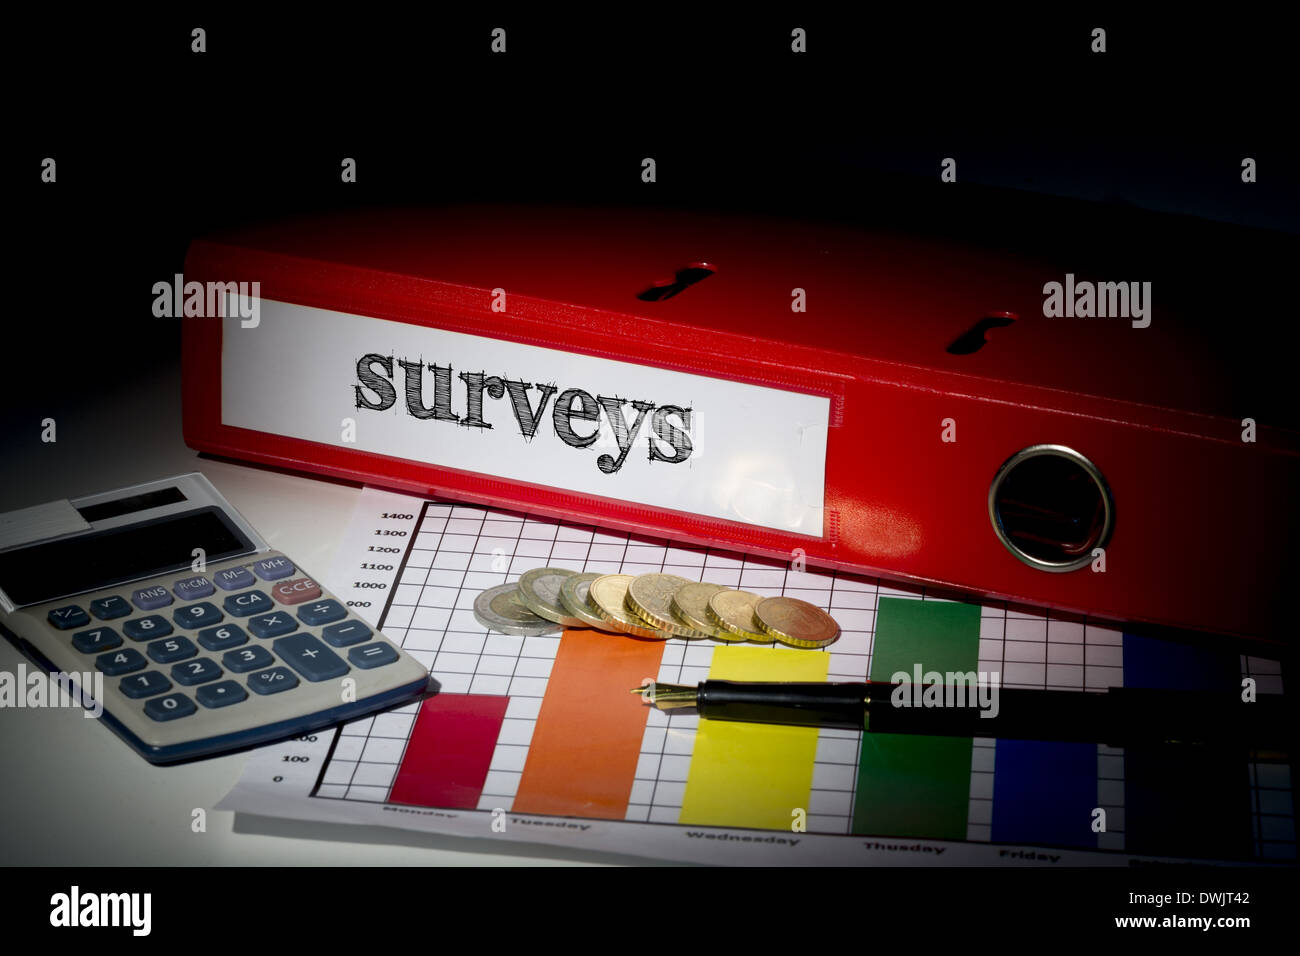 Surveys on red business binder - Stock Image